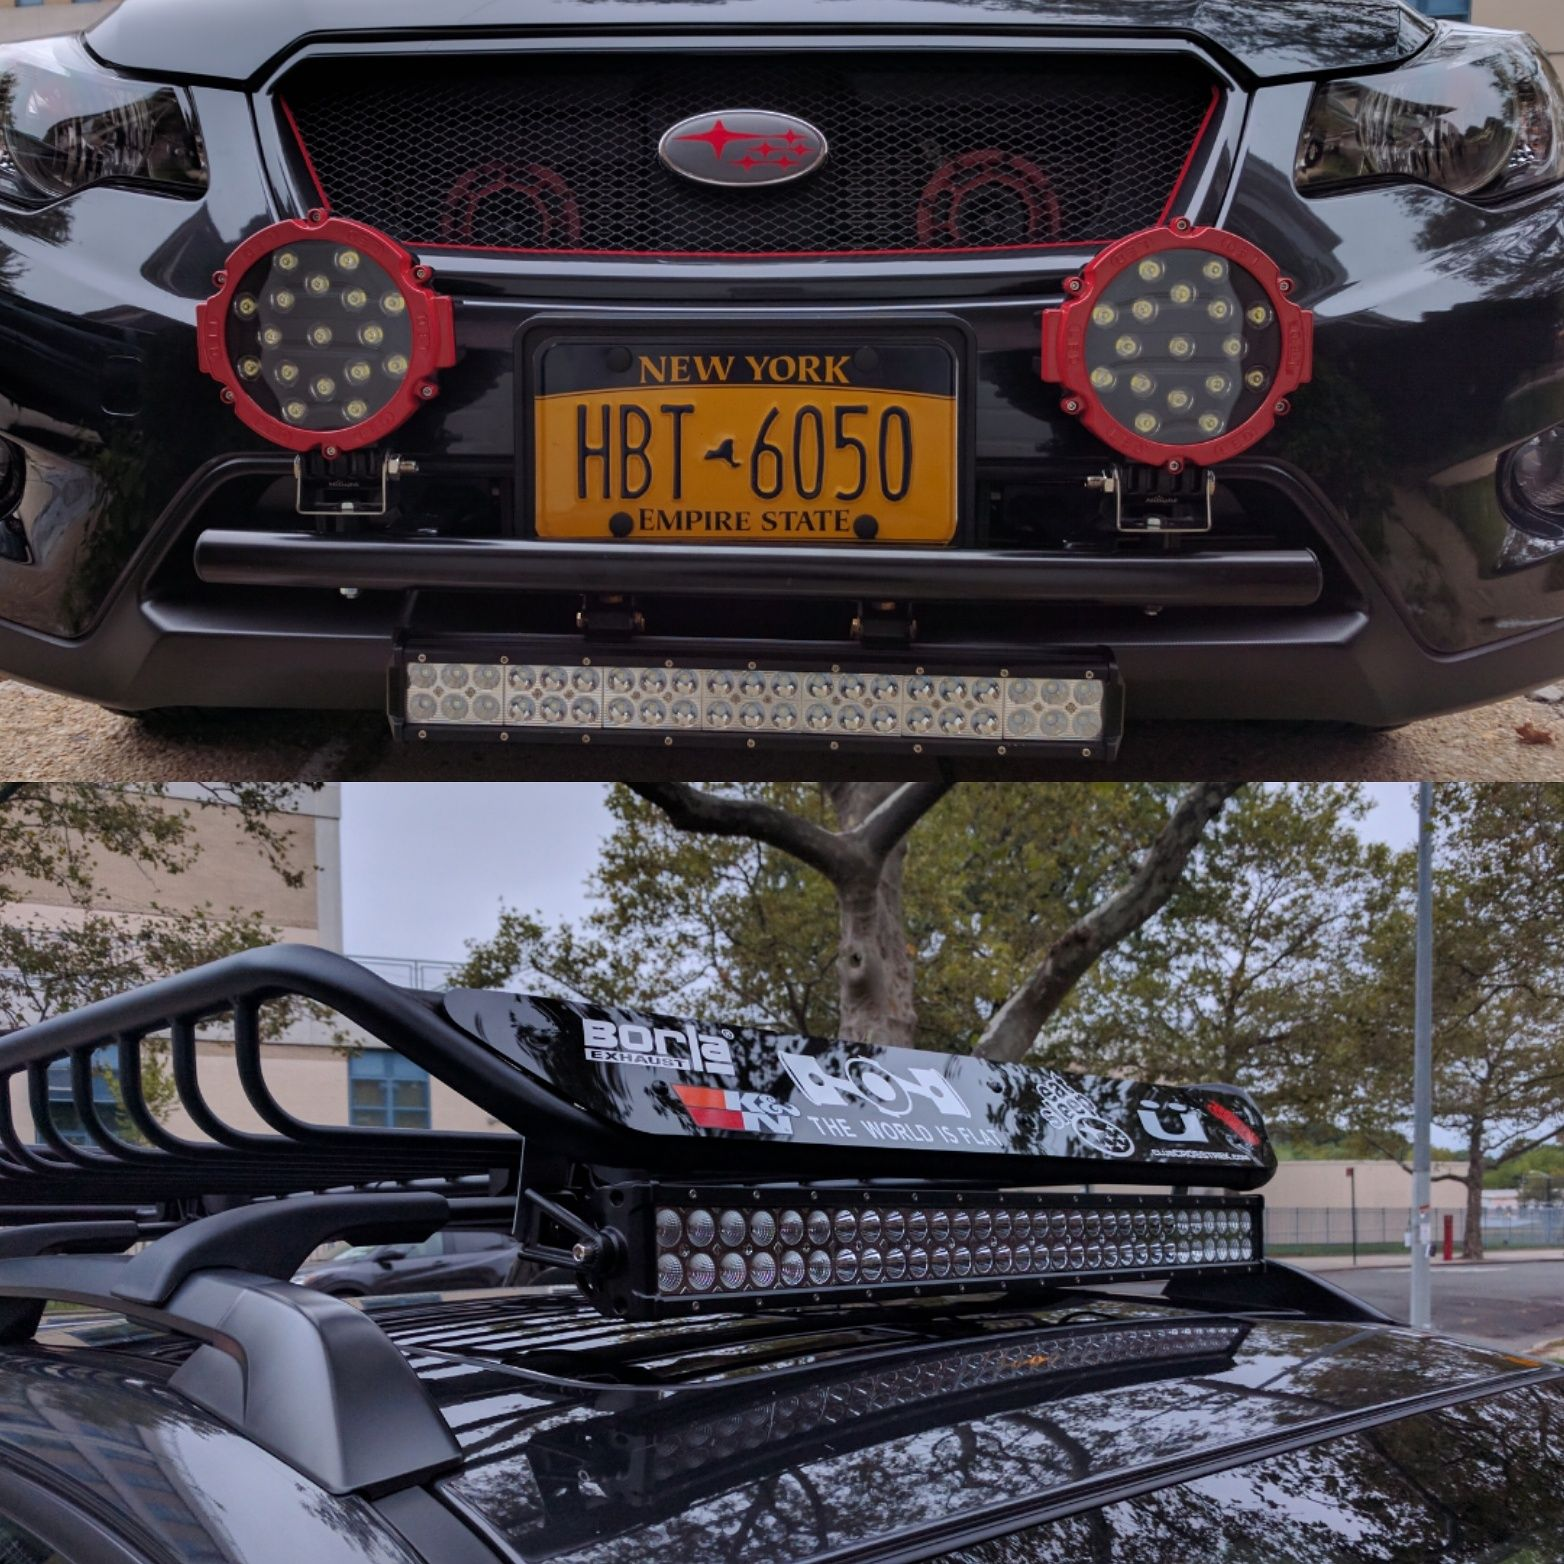 Changed Out My Hella Lights And Bought Another Led Light Bar For The Basket Subaru Wrx Sti Impreza Fo Subaru Crosstrek Subaru Outback Subaru Forester Mods